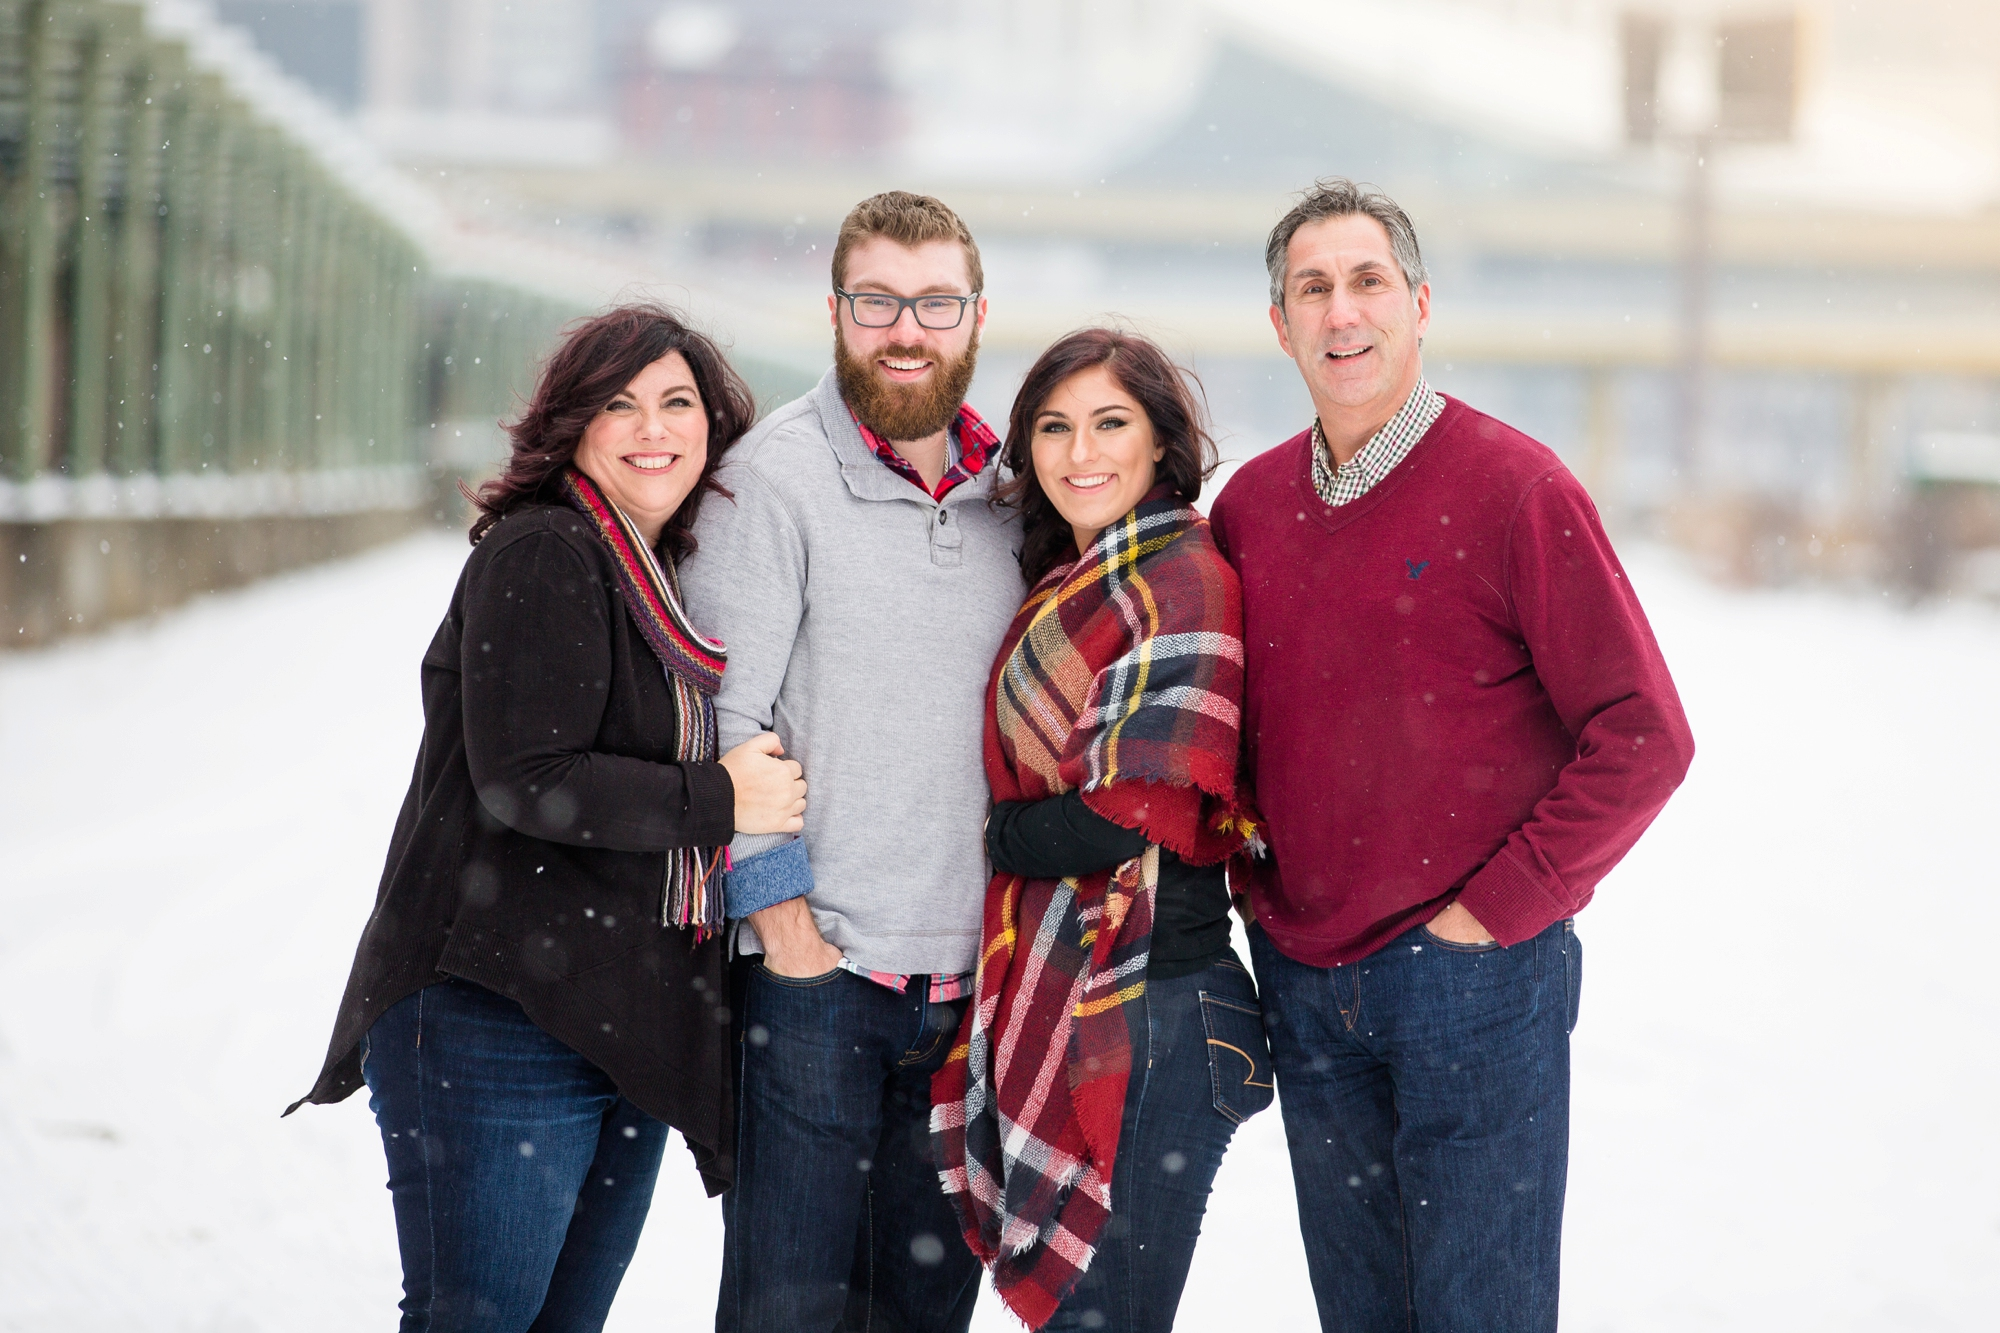 cranberry township family photographer, pittsburgh family photographer, pittsburgh senior photographer, cranberry township senior photographer, strip district photos